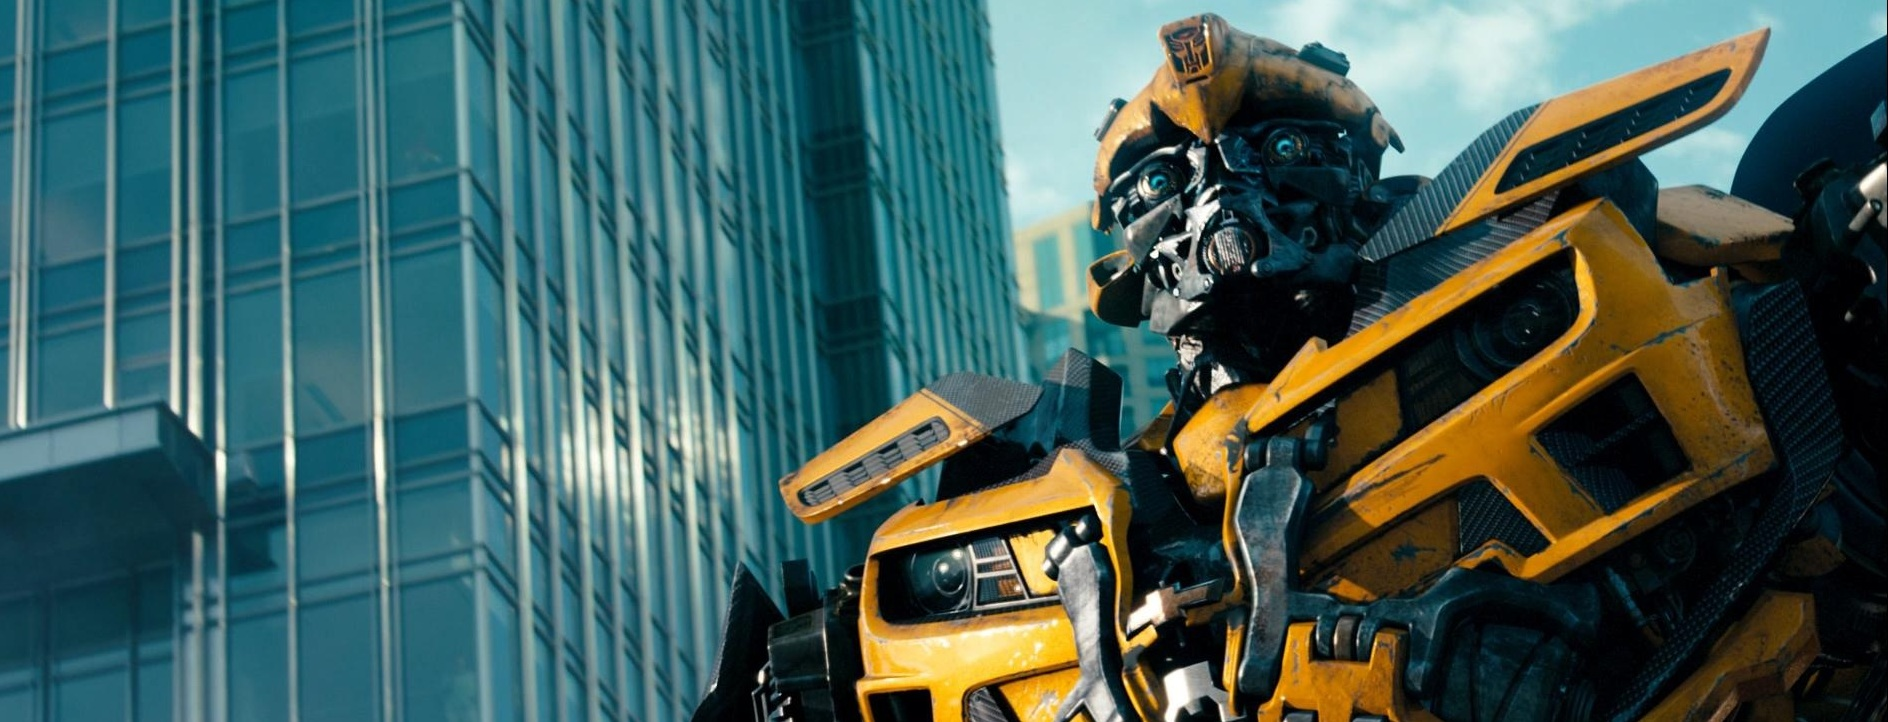 Bumblebee Transformers Dark Of The Moon Wiki Fandom